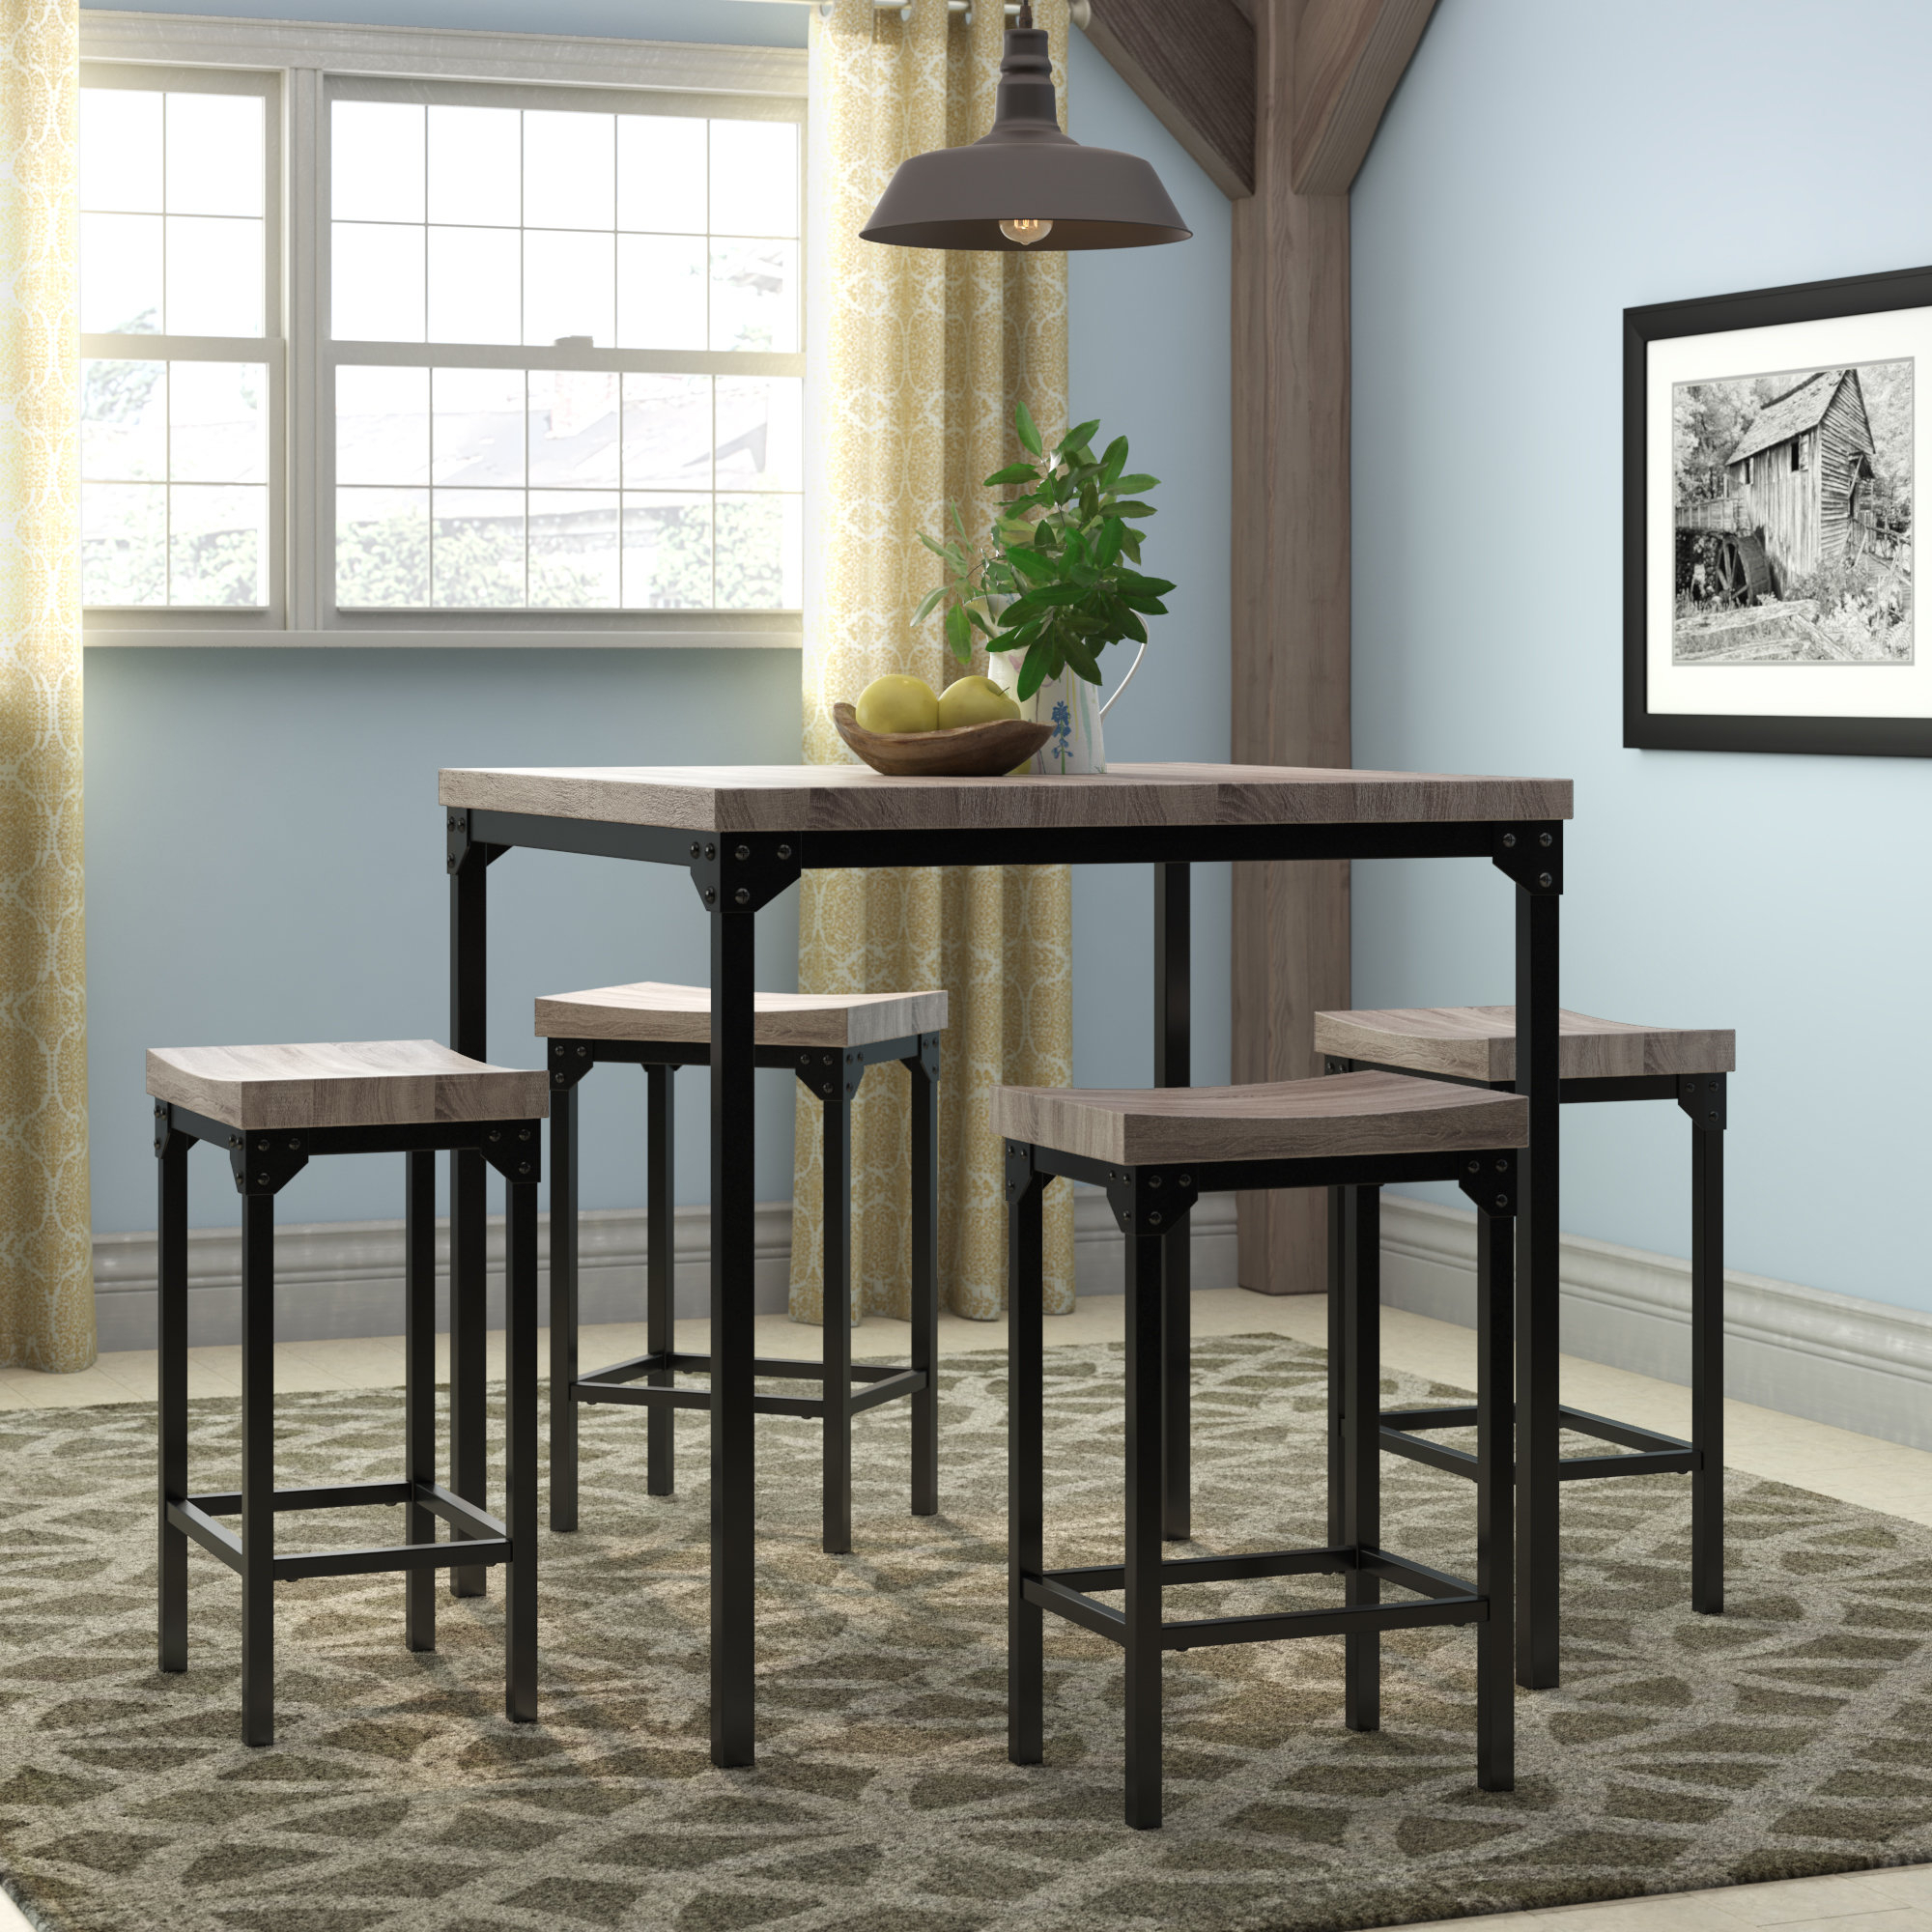 Wegner 5 Piece Counter Height Dining Set For Most Current Saintcroix 3 Piece Dining Sets (View 9 of 20)